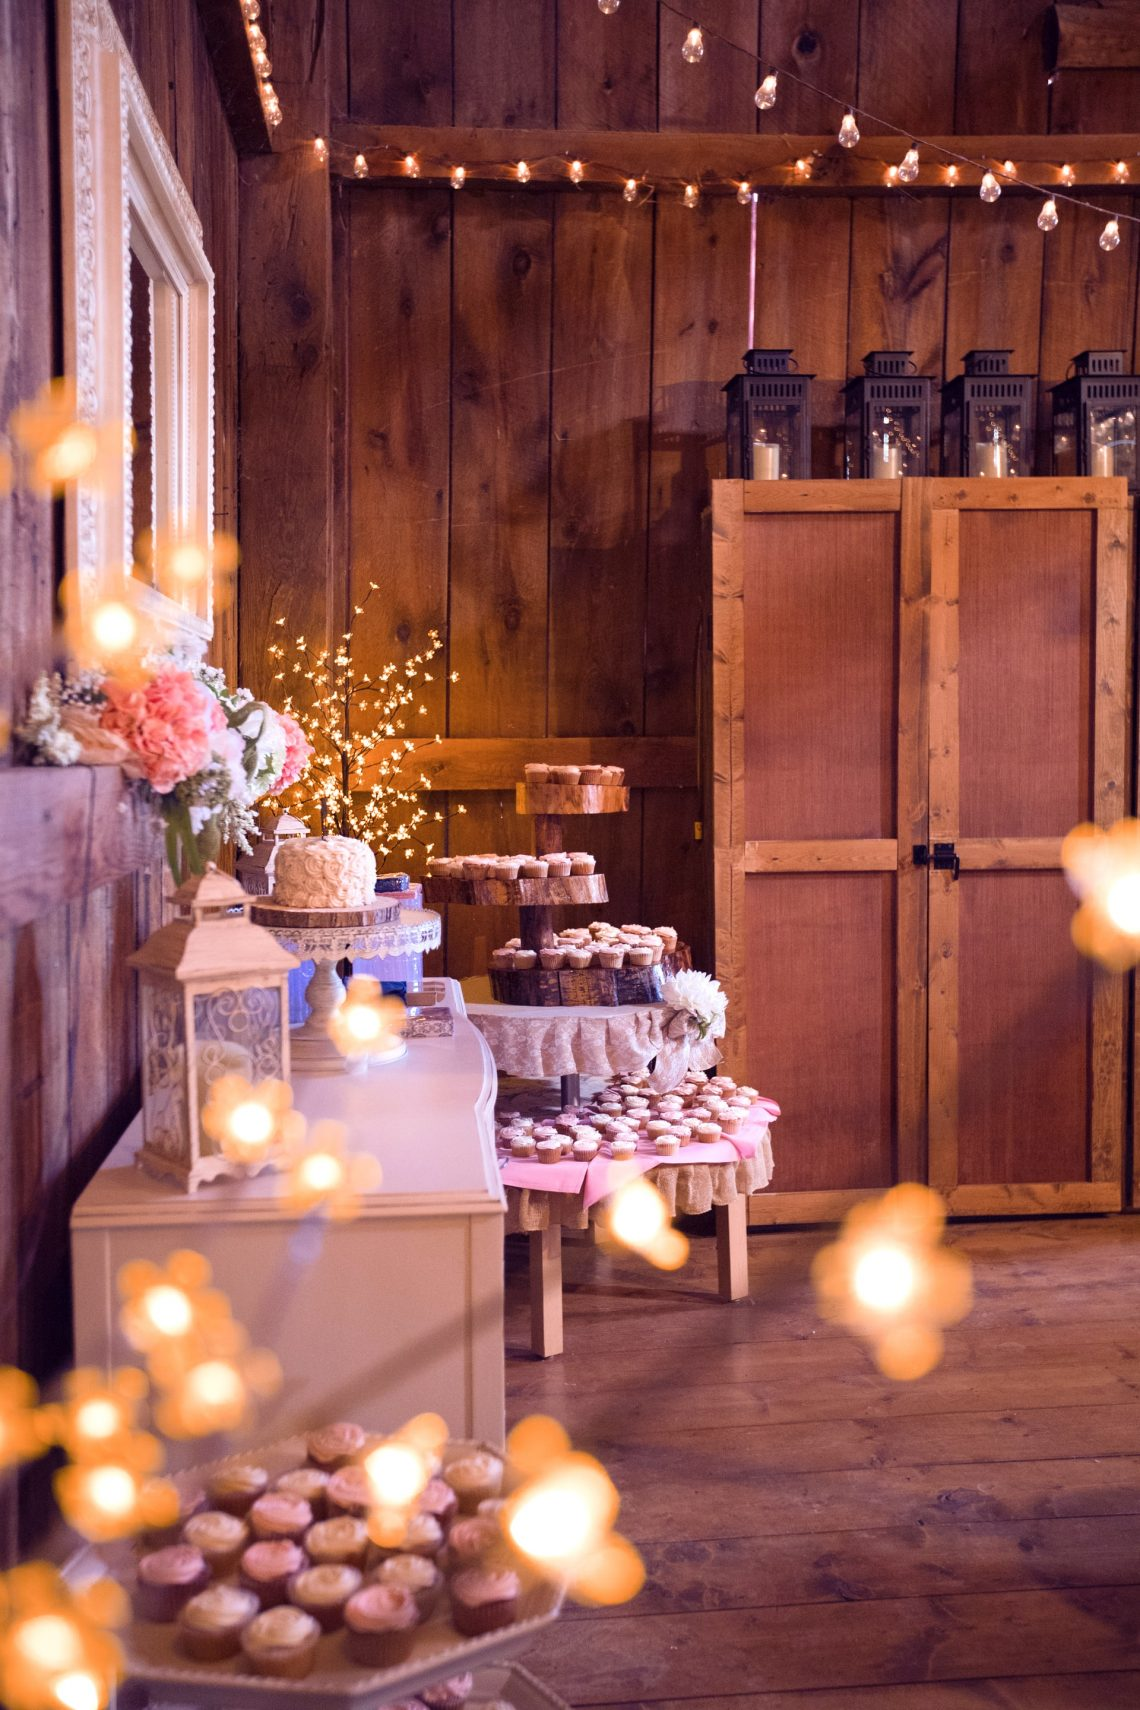 5 Wedding Themes You'll Love for 2021